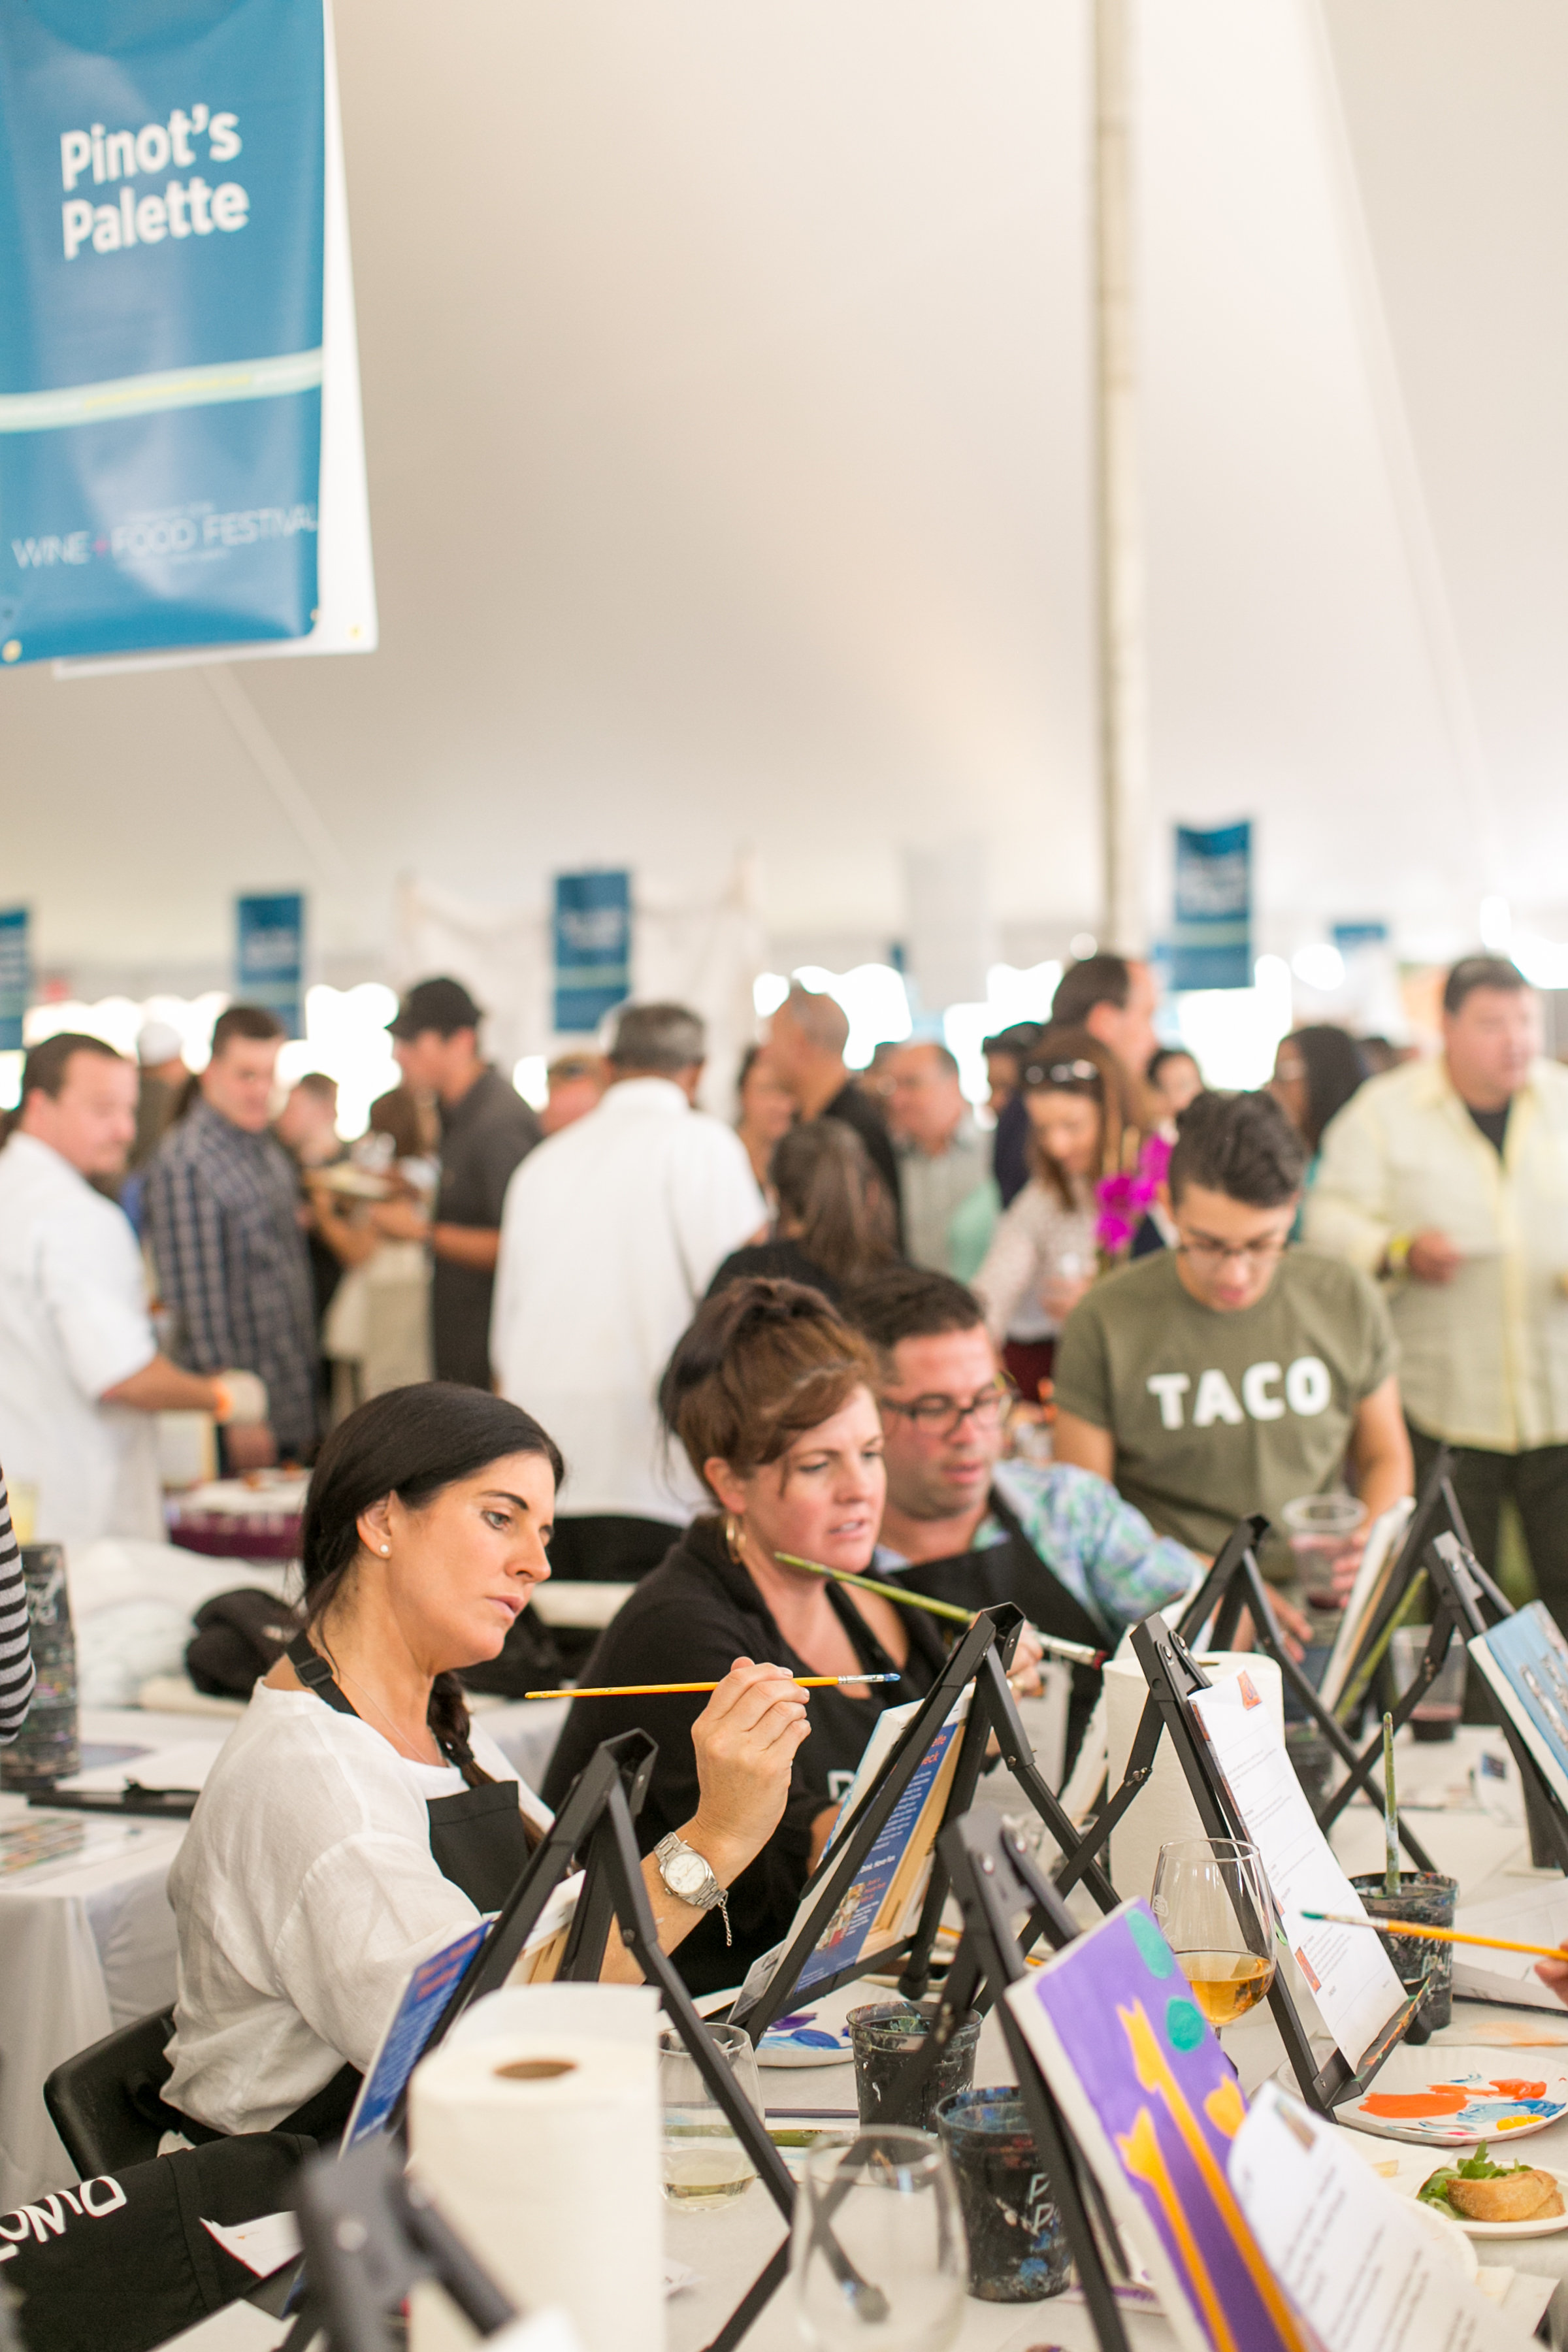 Pinot's Palette at the Greenwich Wine and Food Festival 2016 | CTEatsOut.com